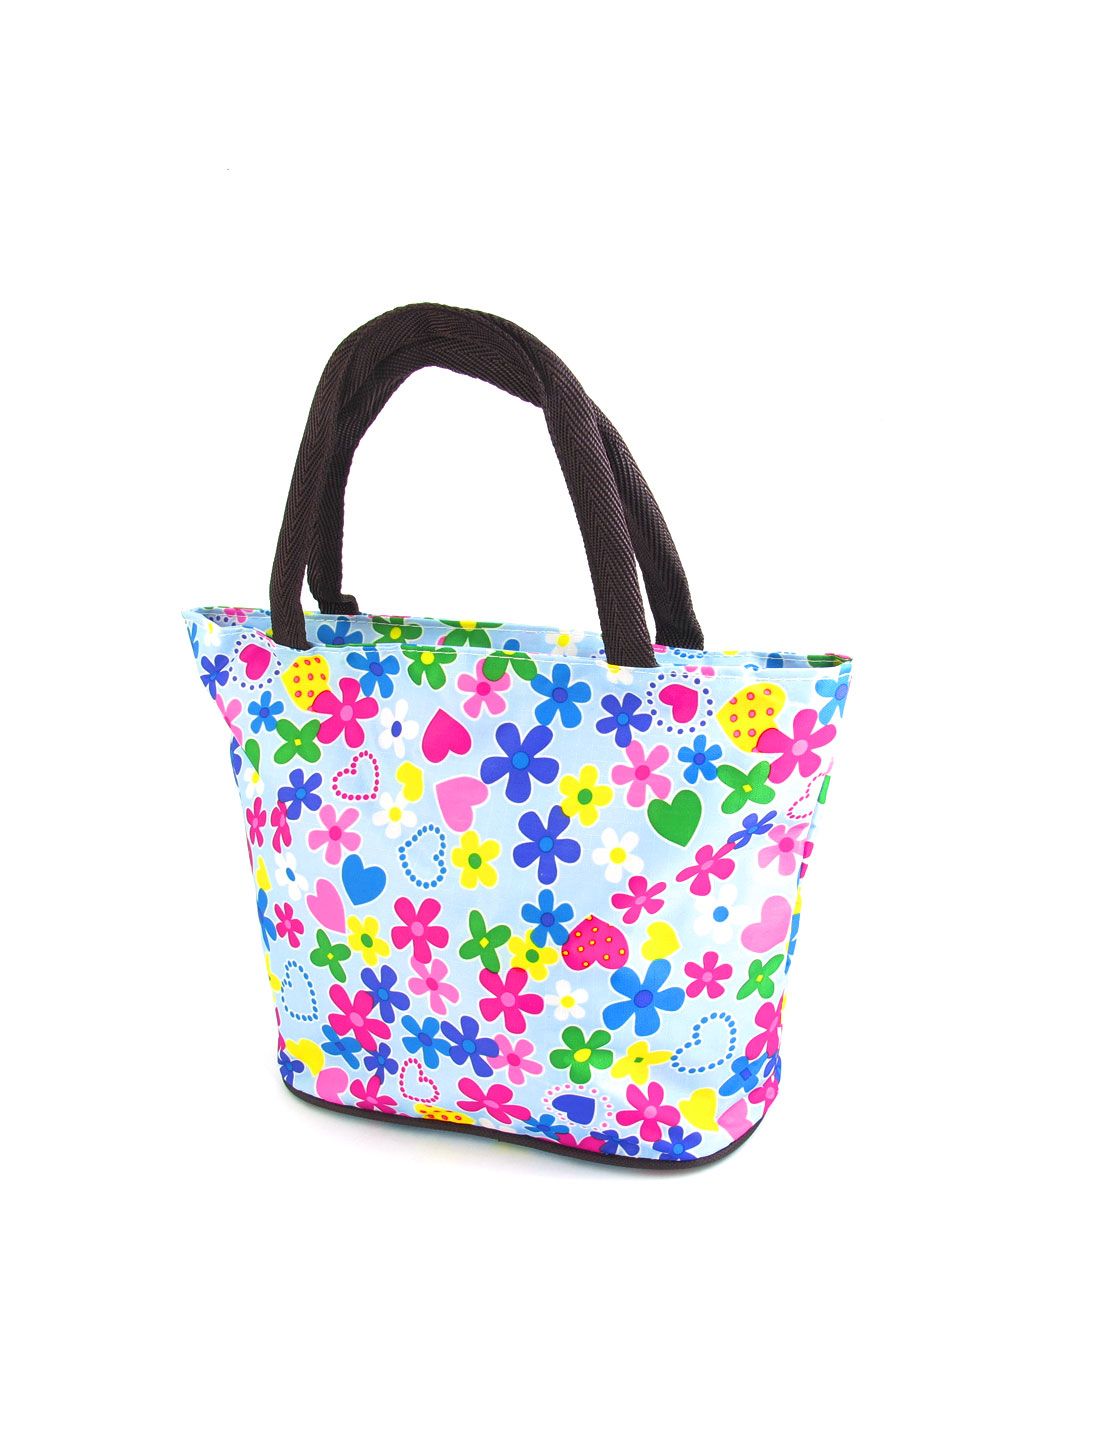 Ladies Portable Flower Heart Pattern Oxford Cloth Waterproof Handbag Totes